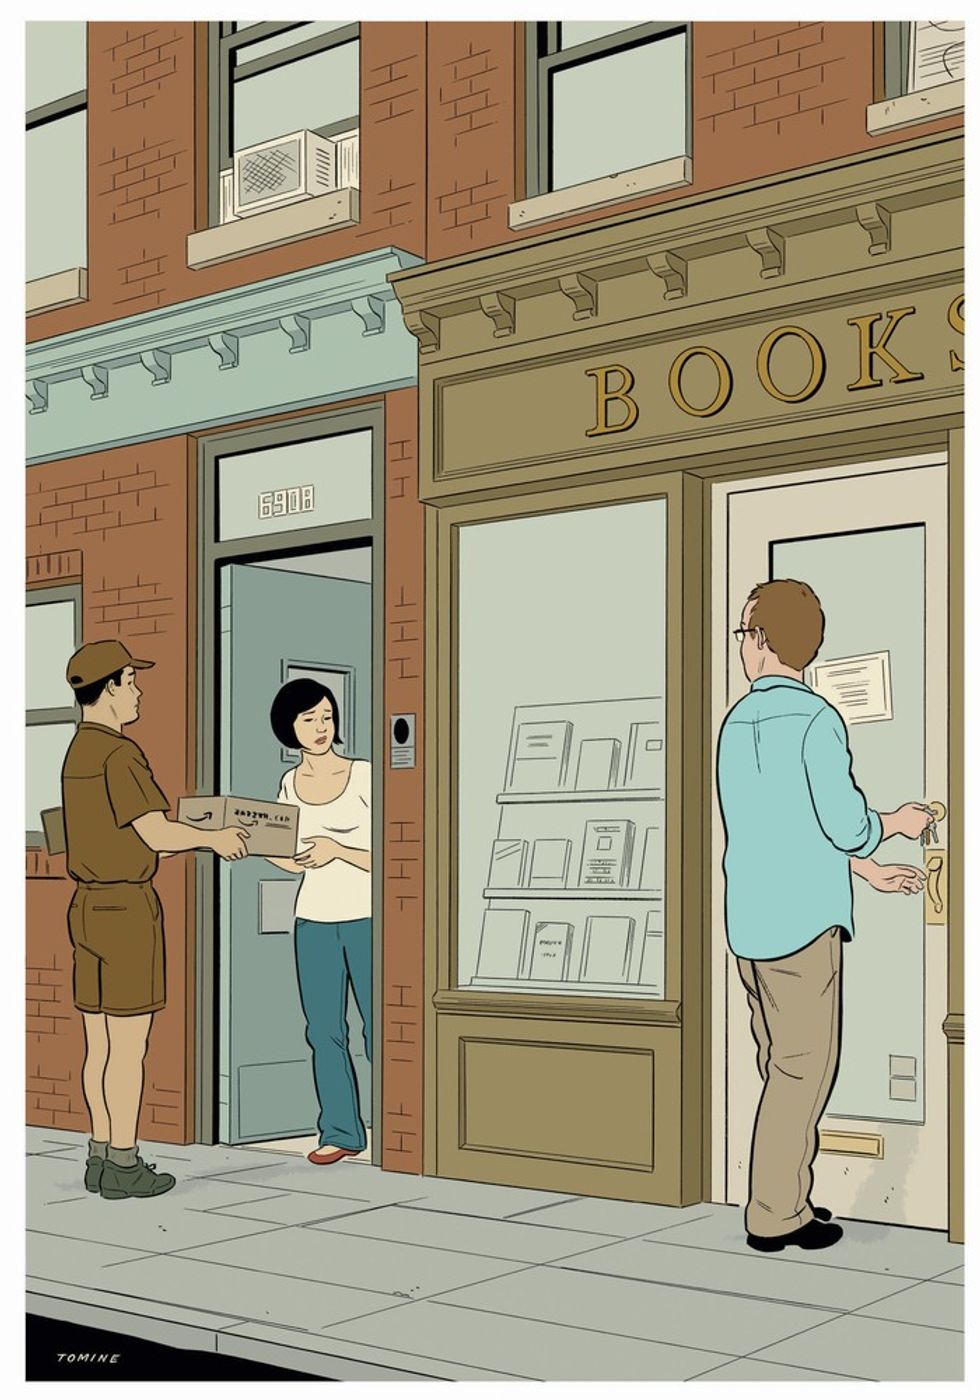 Adrian Tomine's Wonderful New York Drawings